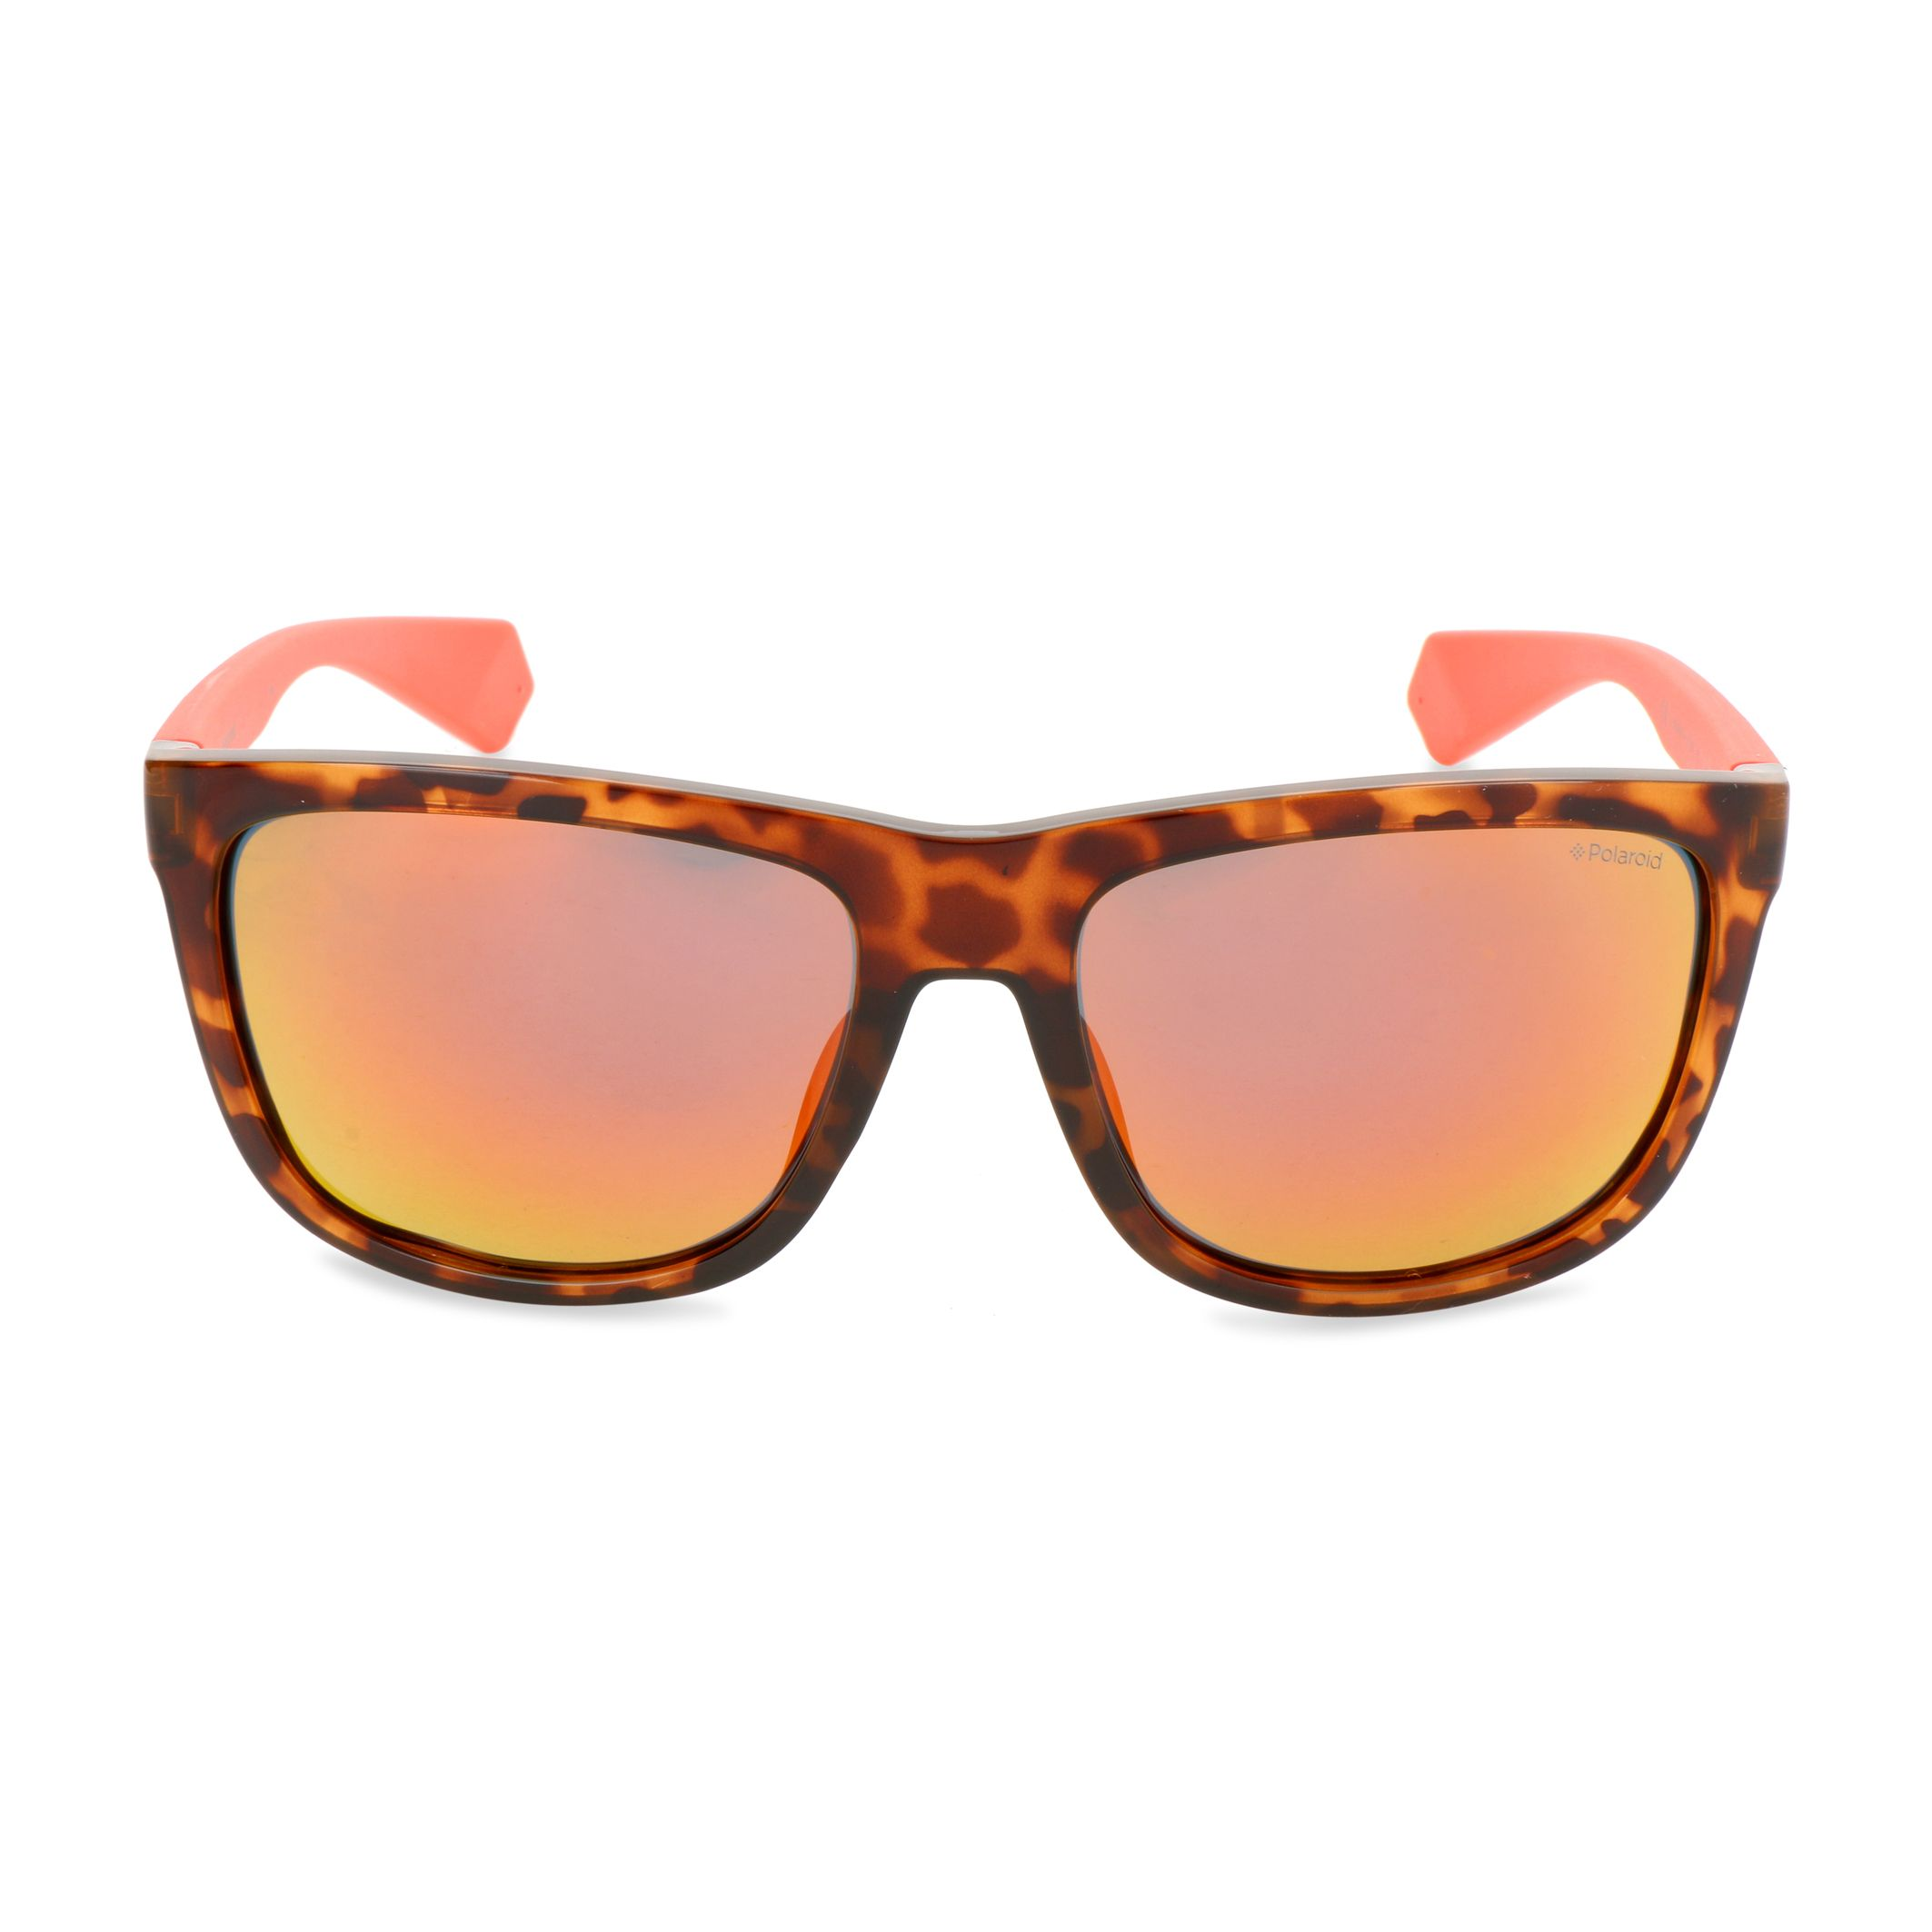 Polaroid Unisexs Sunglasses